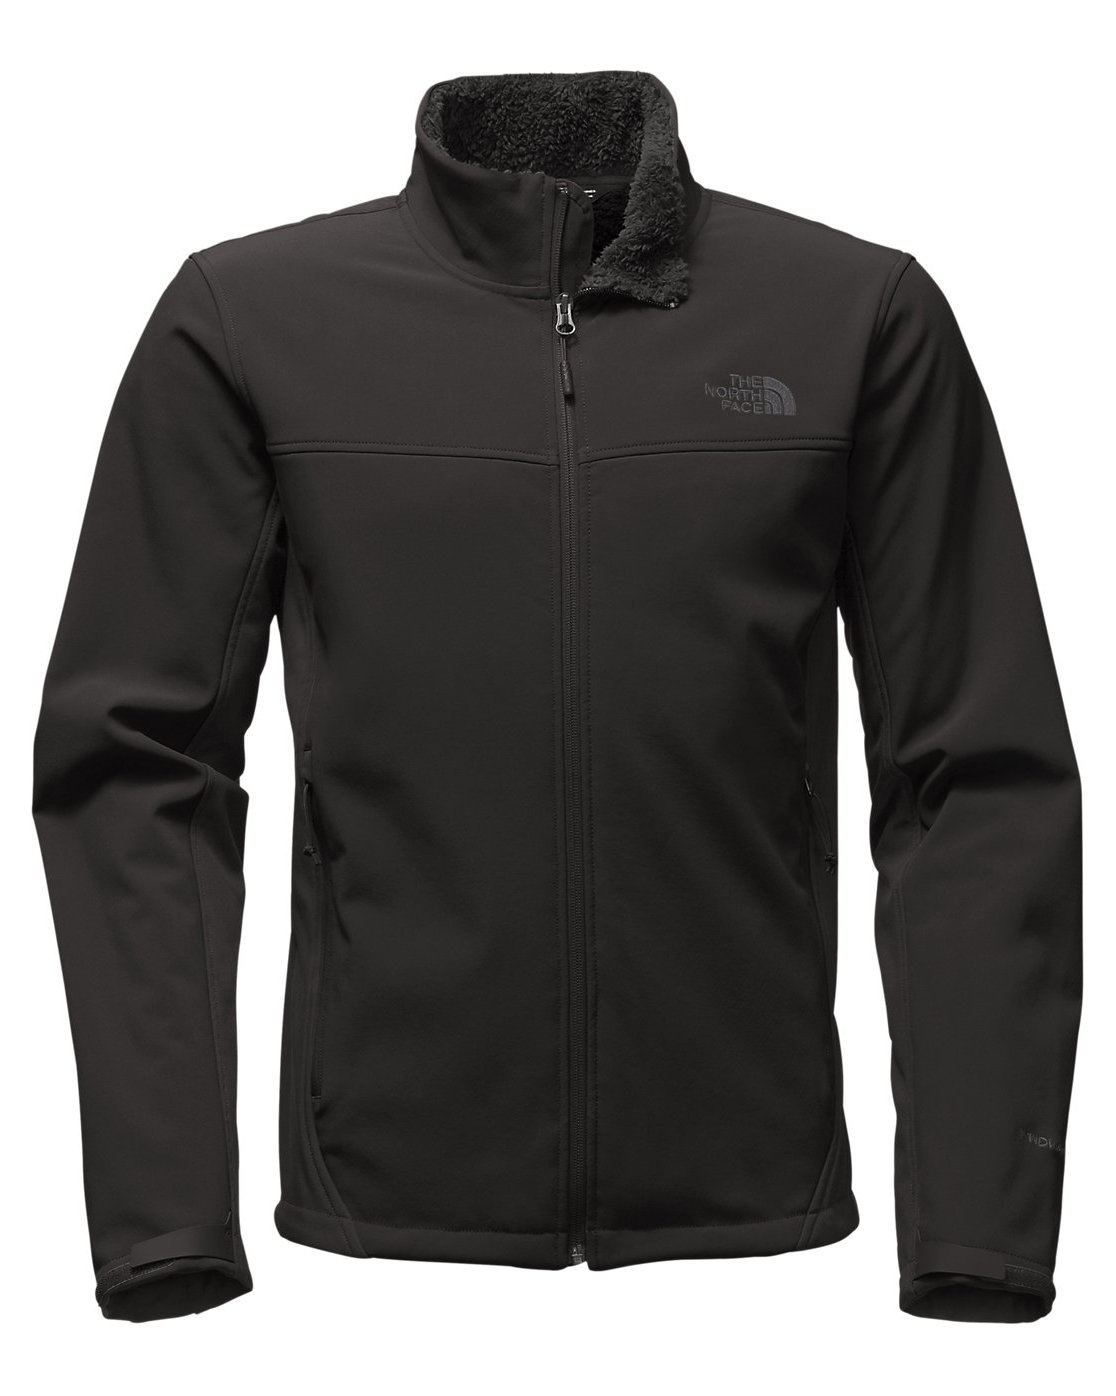 The North Face Apex Chromium Thermal Soft Shell Jacket - Small/TNF Black-TNF Black